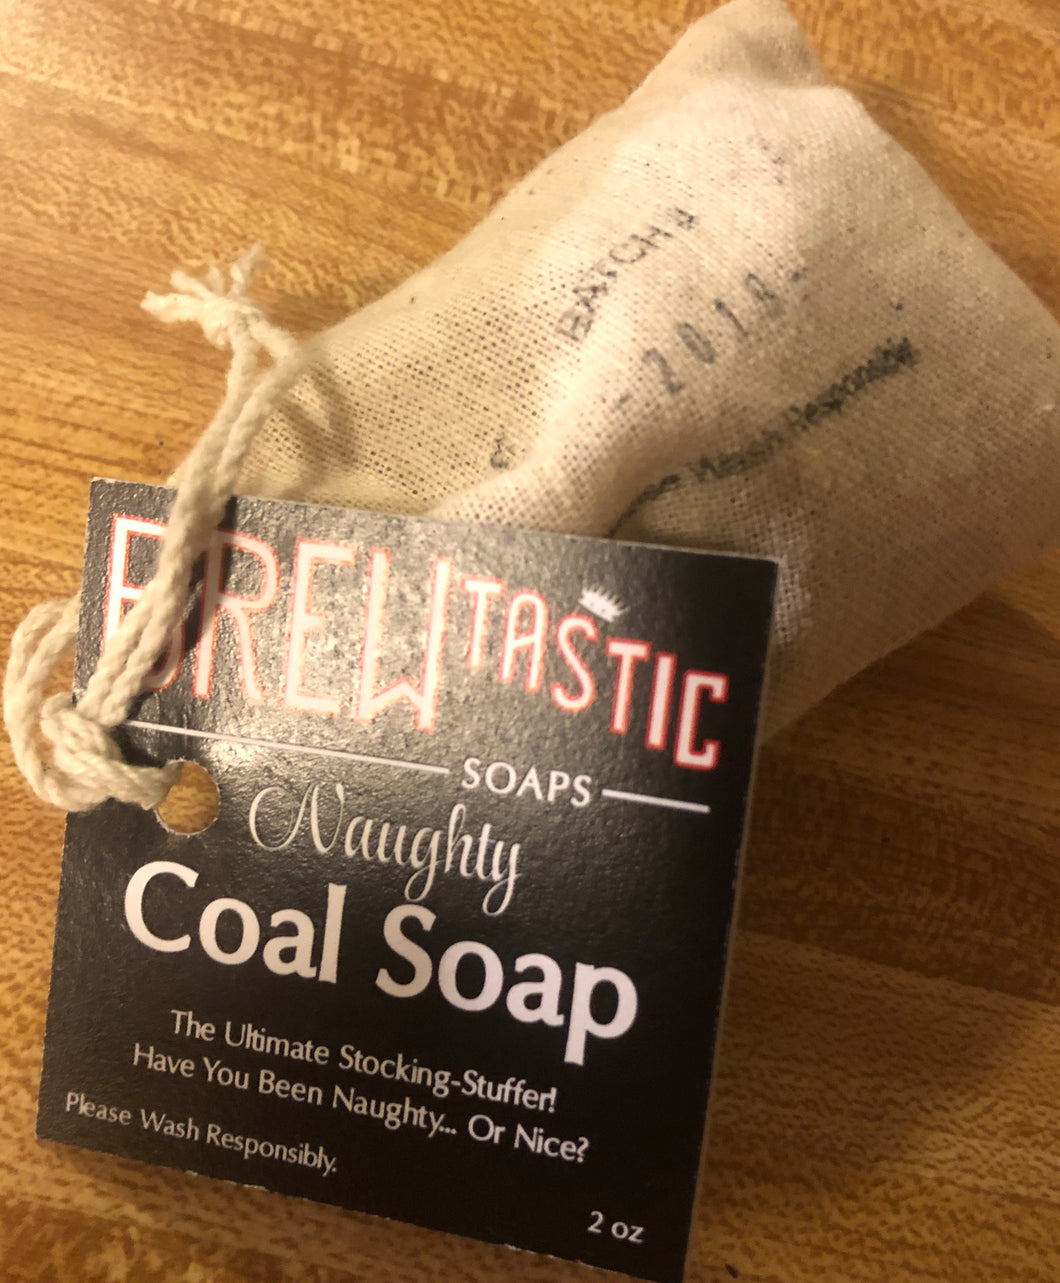 Naughty Coal Soap